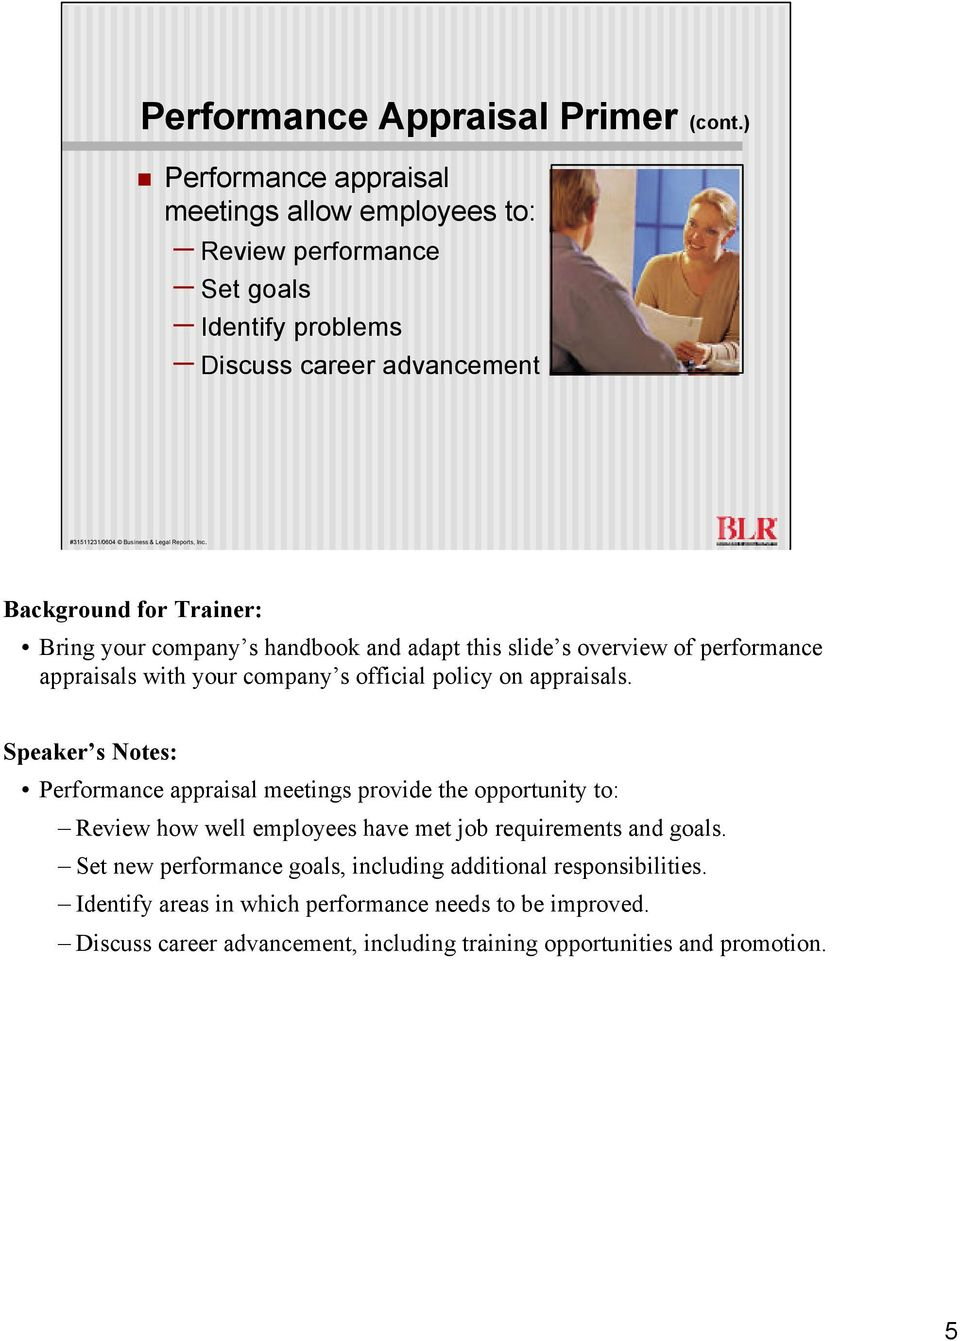 handbook and adapt this slide s overview of performance appraisals with your company s official policy on appraisals.